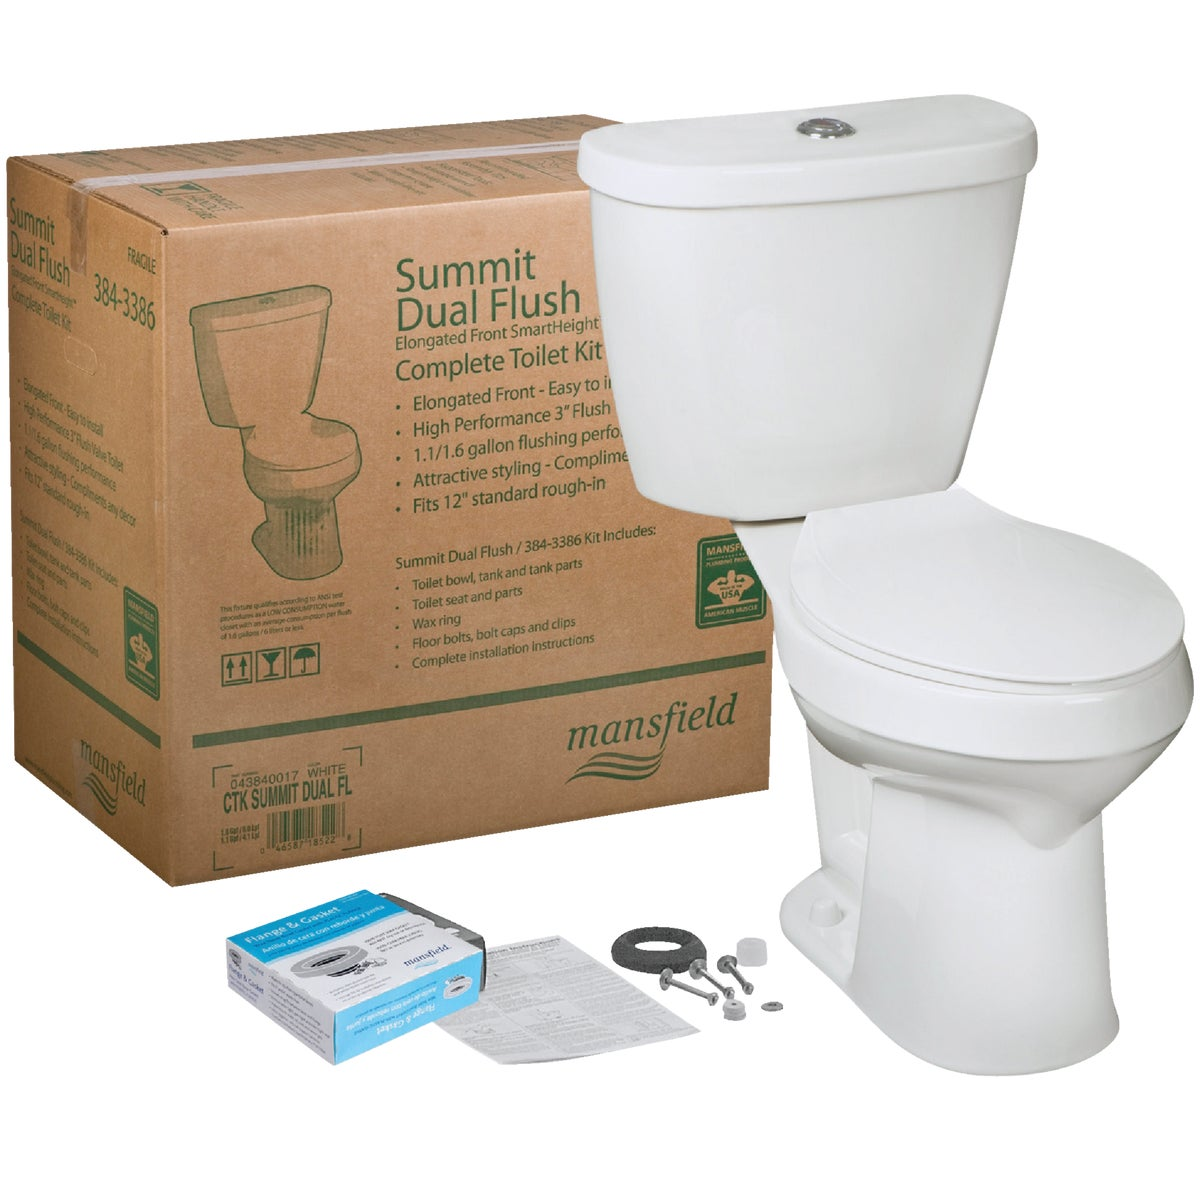 DUAL-FLUSH SUMMIT TOILET